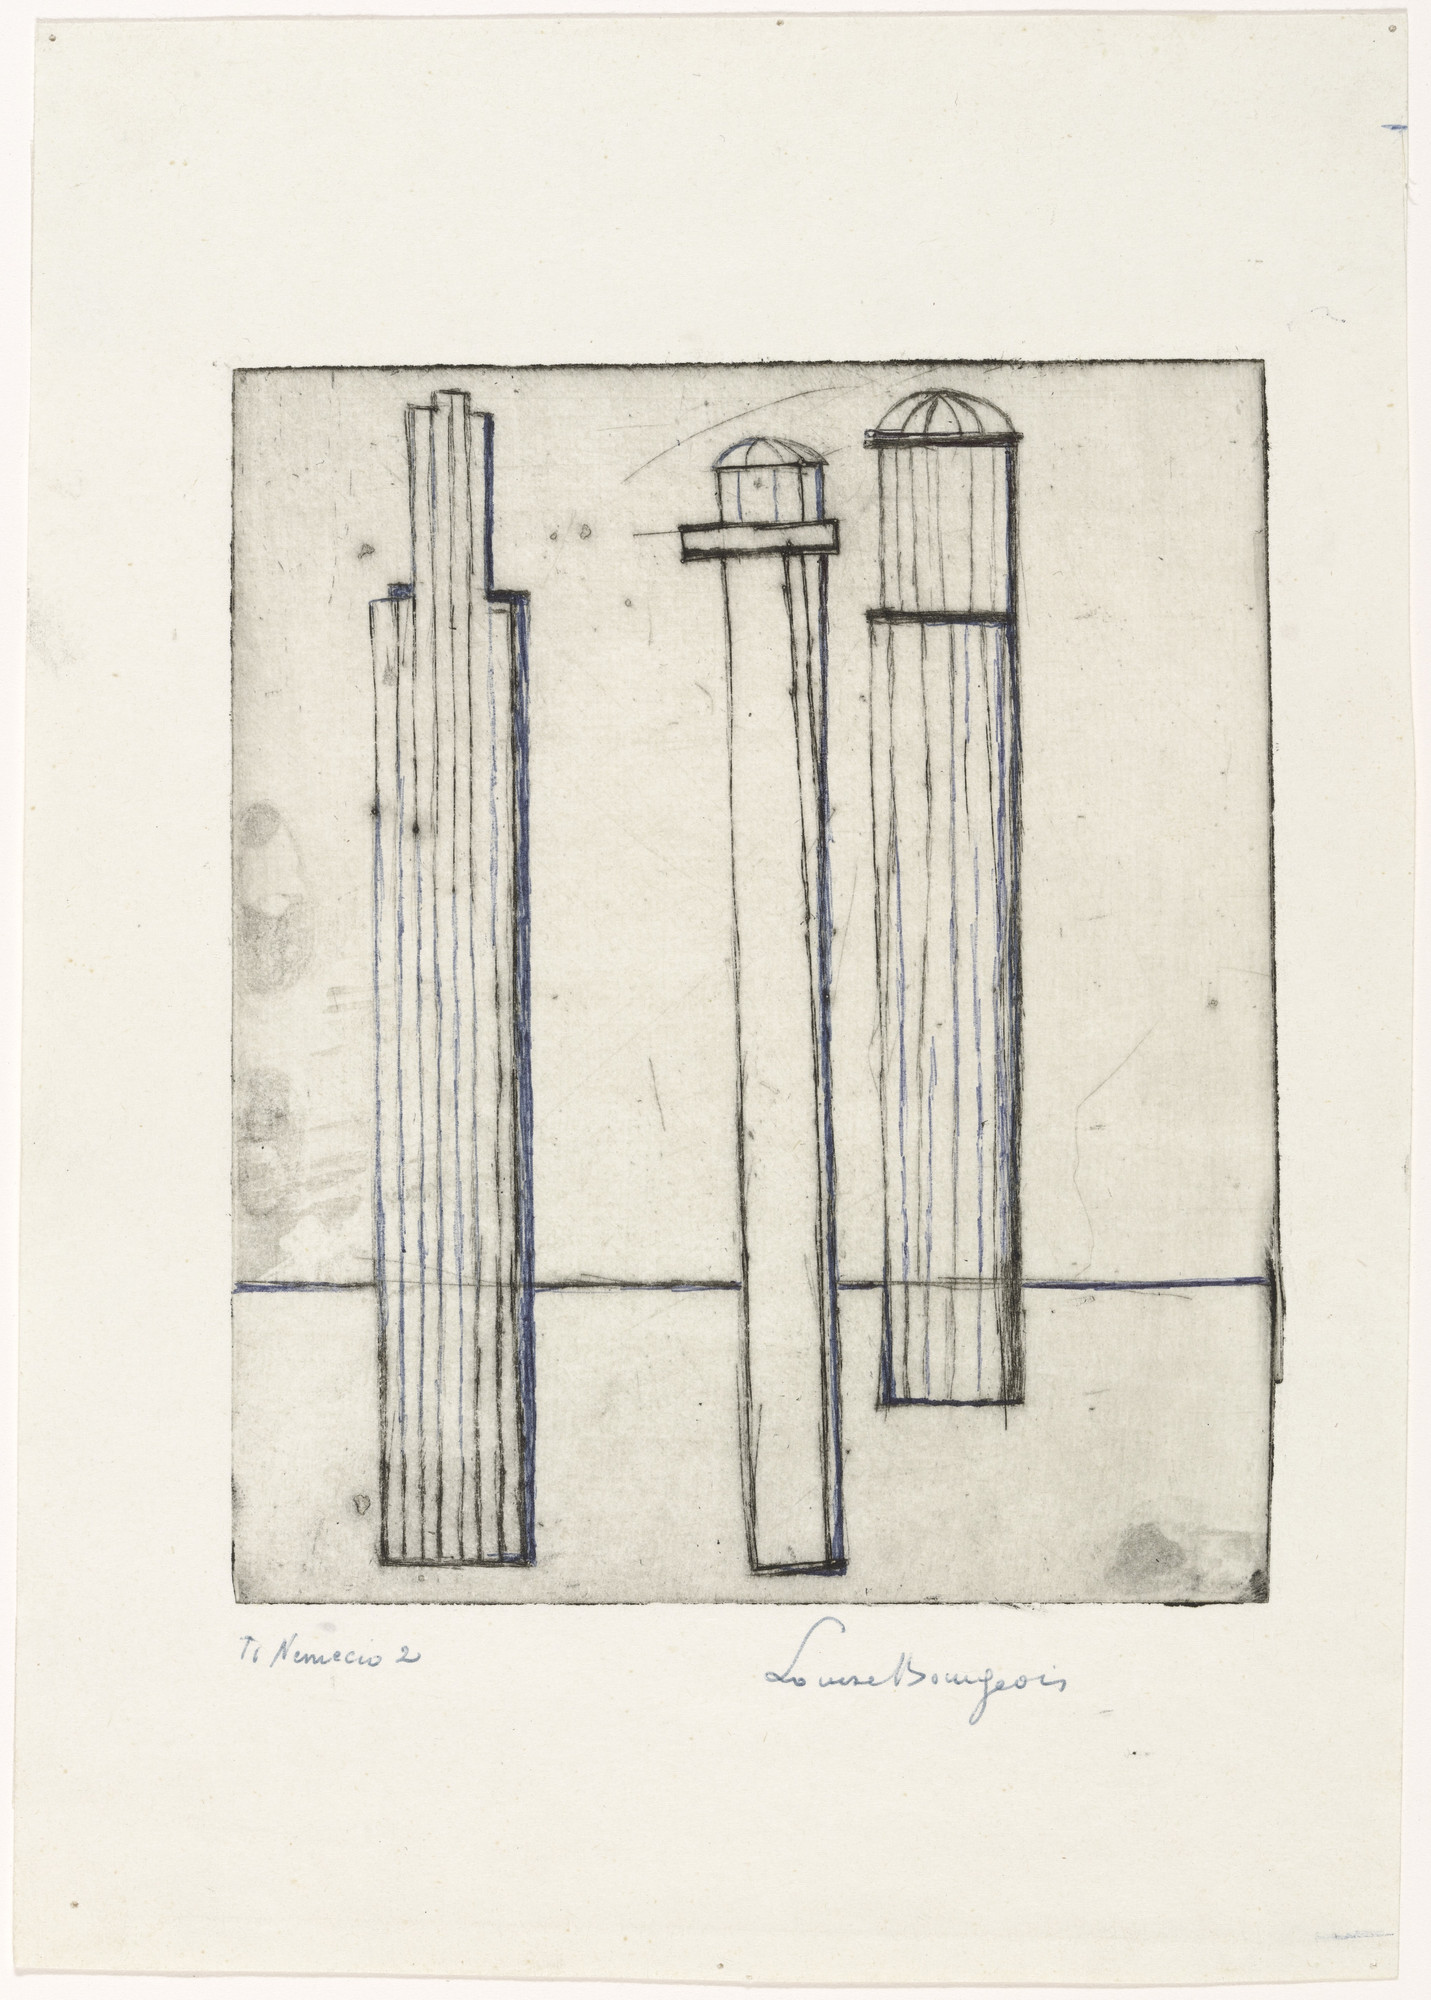 Louise Bourgeois. Plate 3 of 9, from the illustrated book, He Disappeared into Complete Silence. 1946-1947